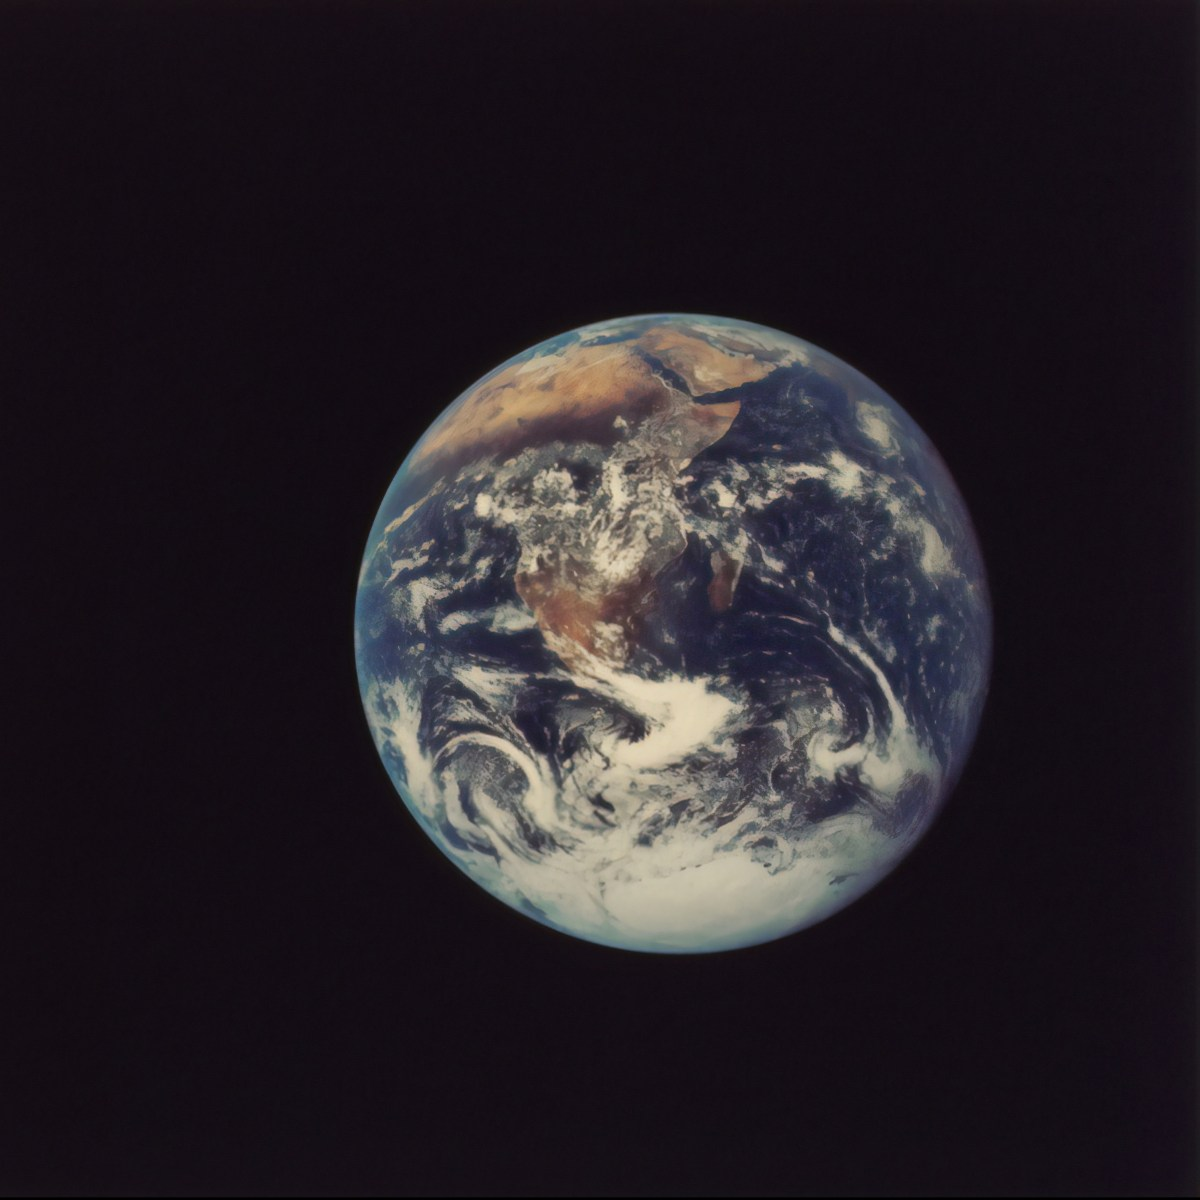 the planet Earth